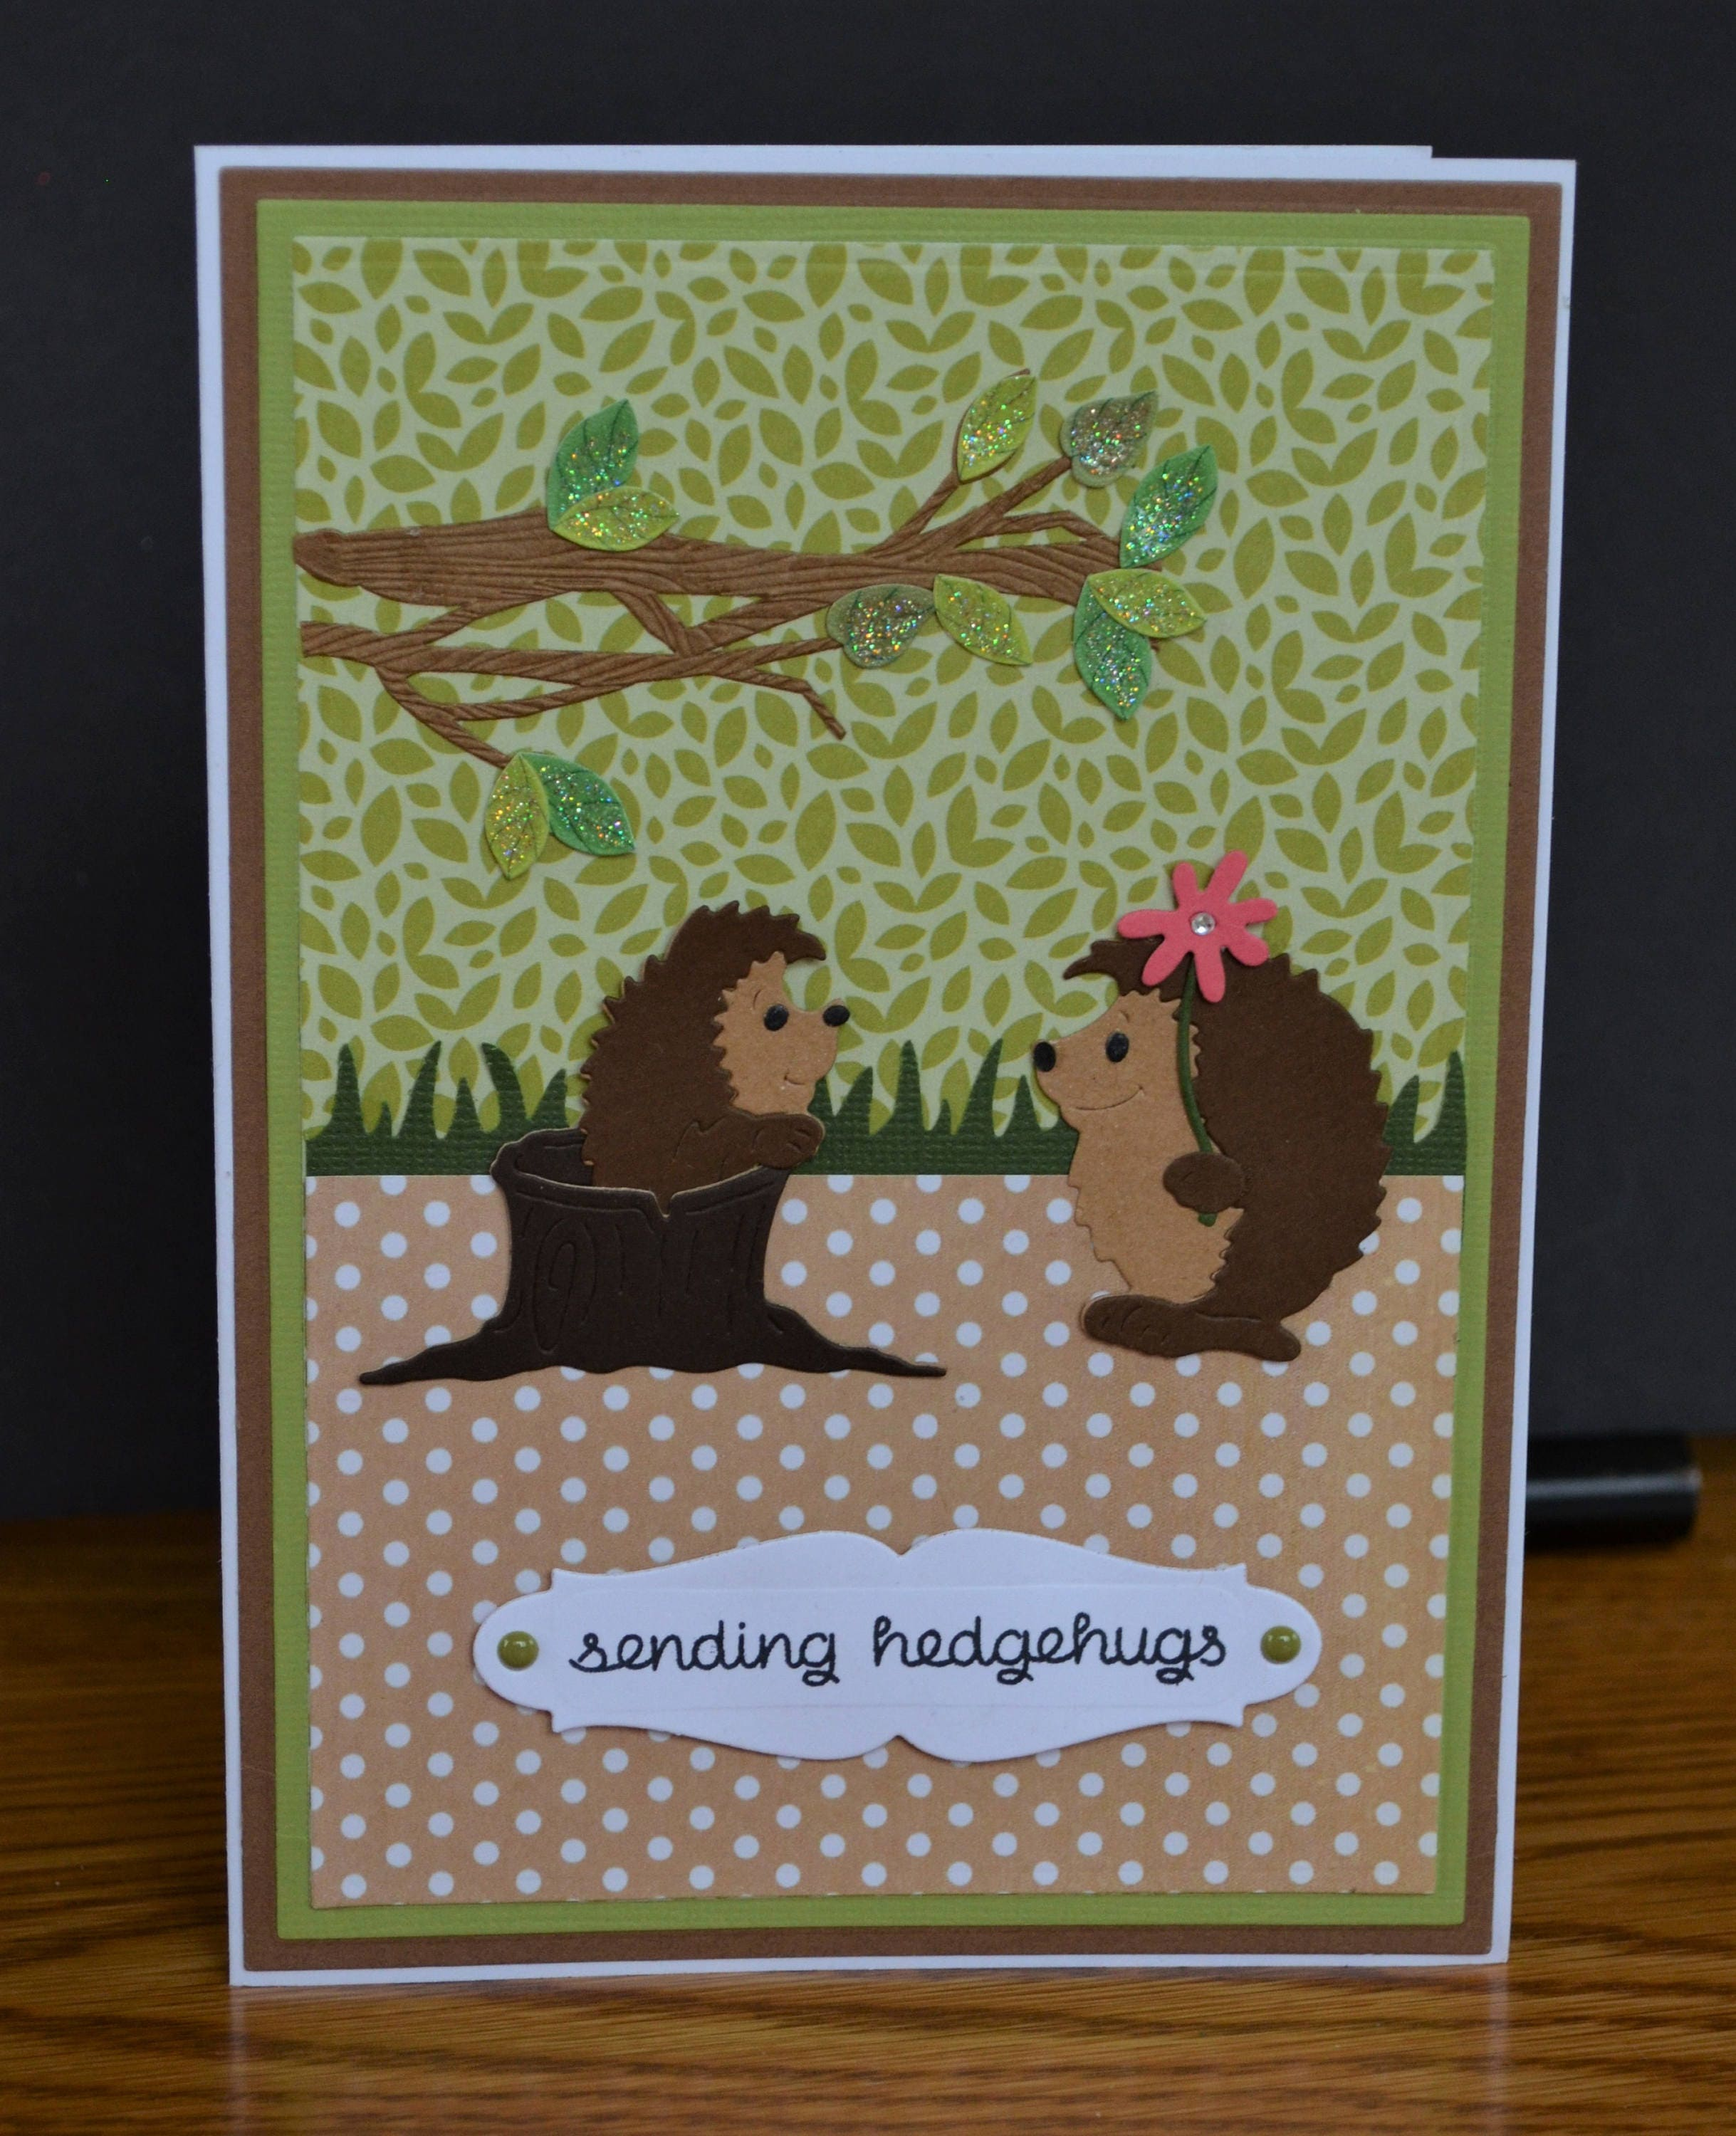 Handmade Greeting Card With Cute Decut Hedgehogssending Etsy